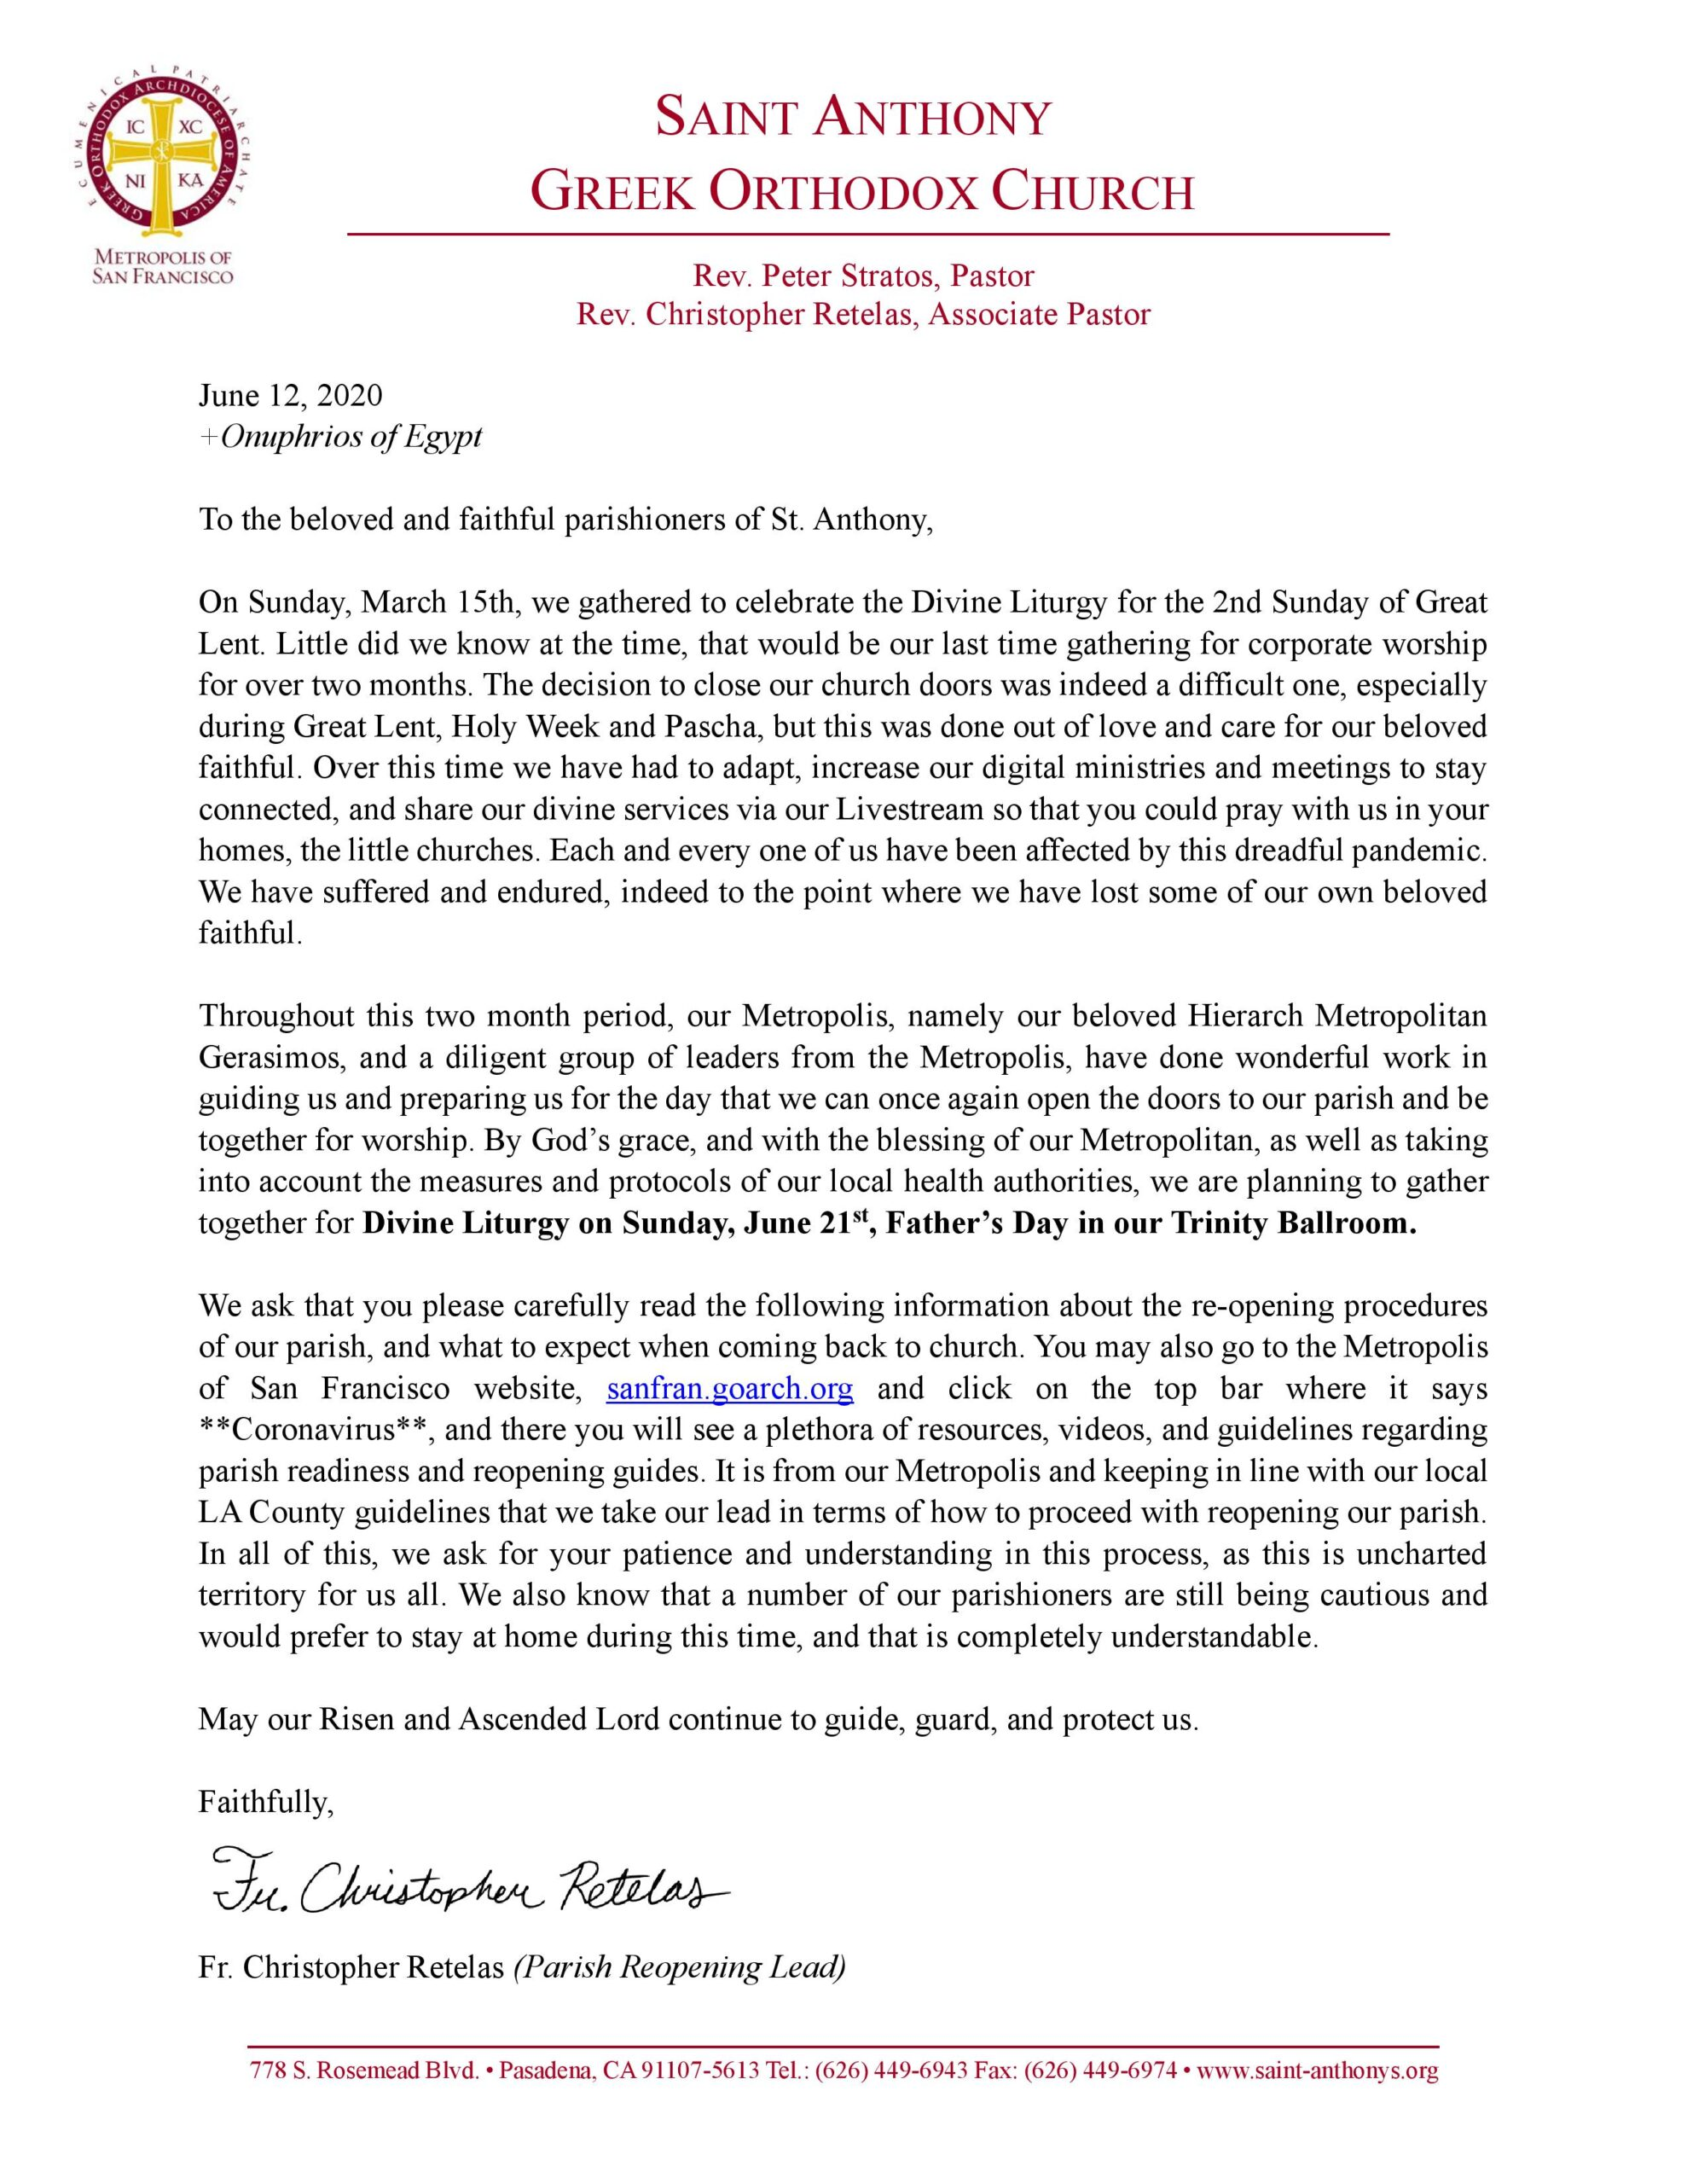 reopening letter edited 6.11.20-page-001